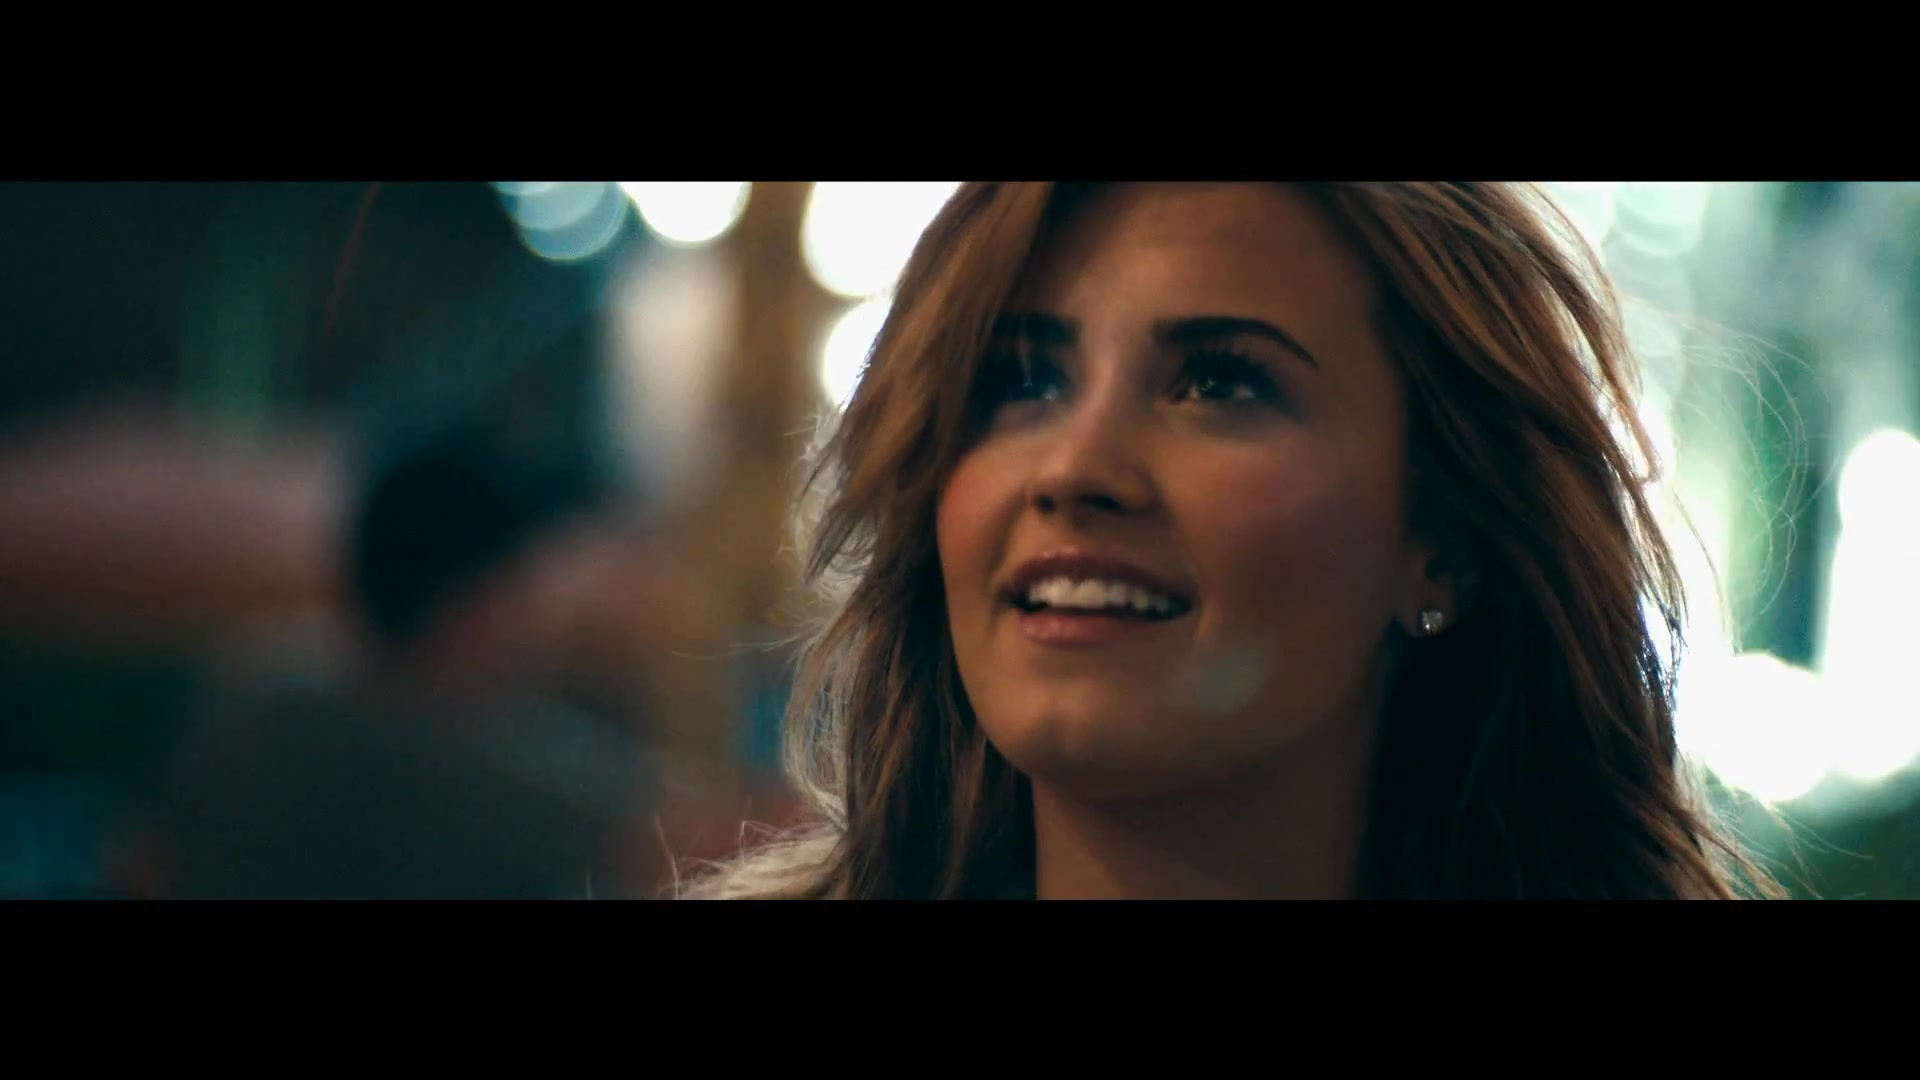 Demi Lovato Image Images  Usa Music Video Screencaps Hd Wallpaper Background Photos